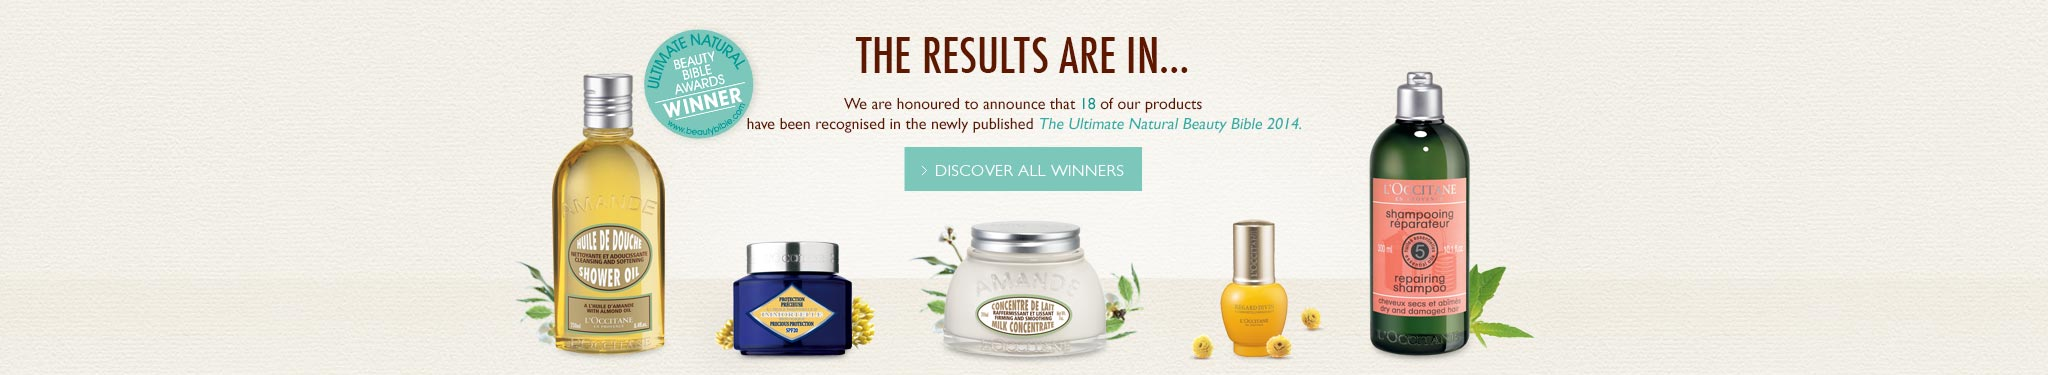 The Ultimate Natural Beauty Bible Winners